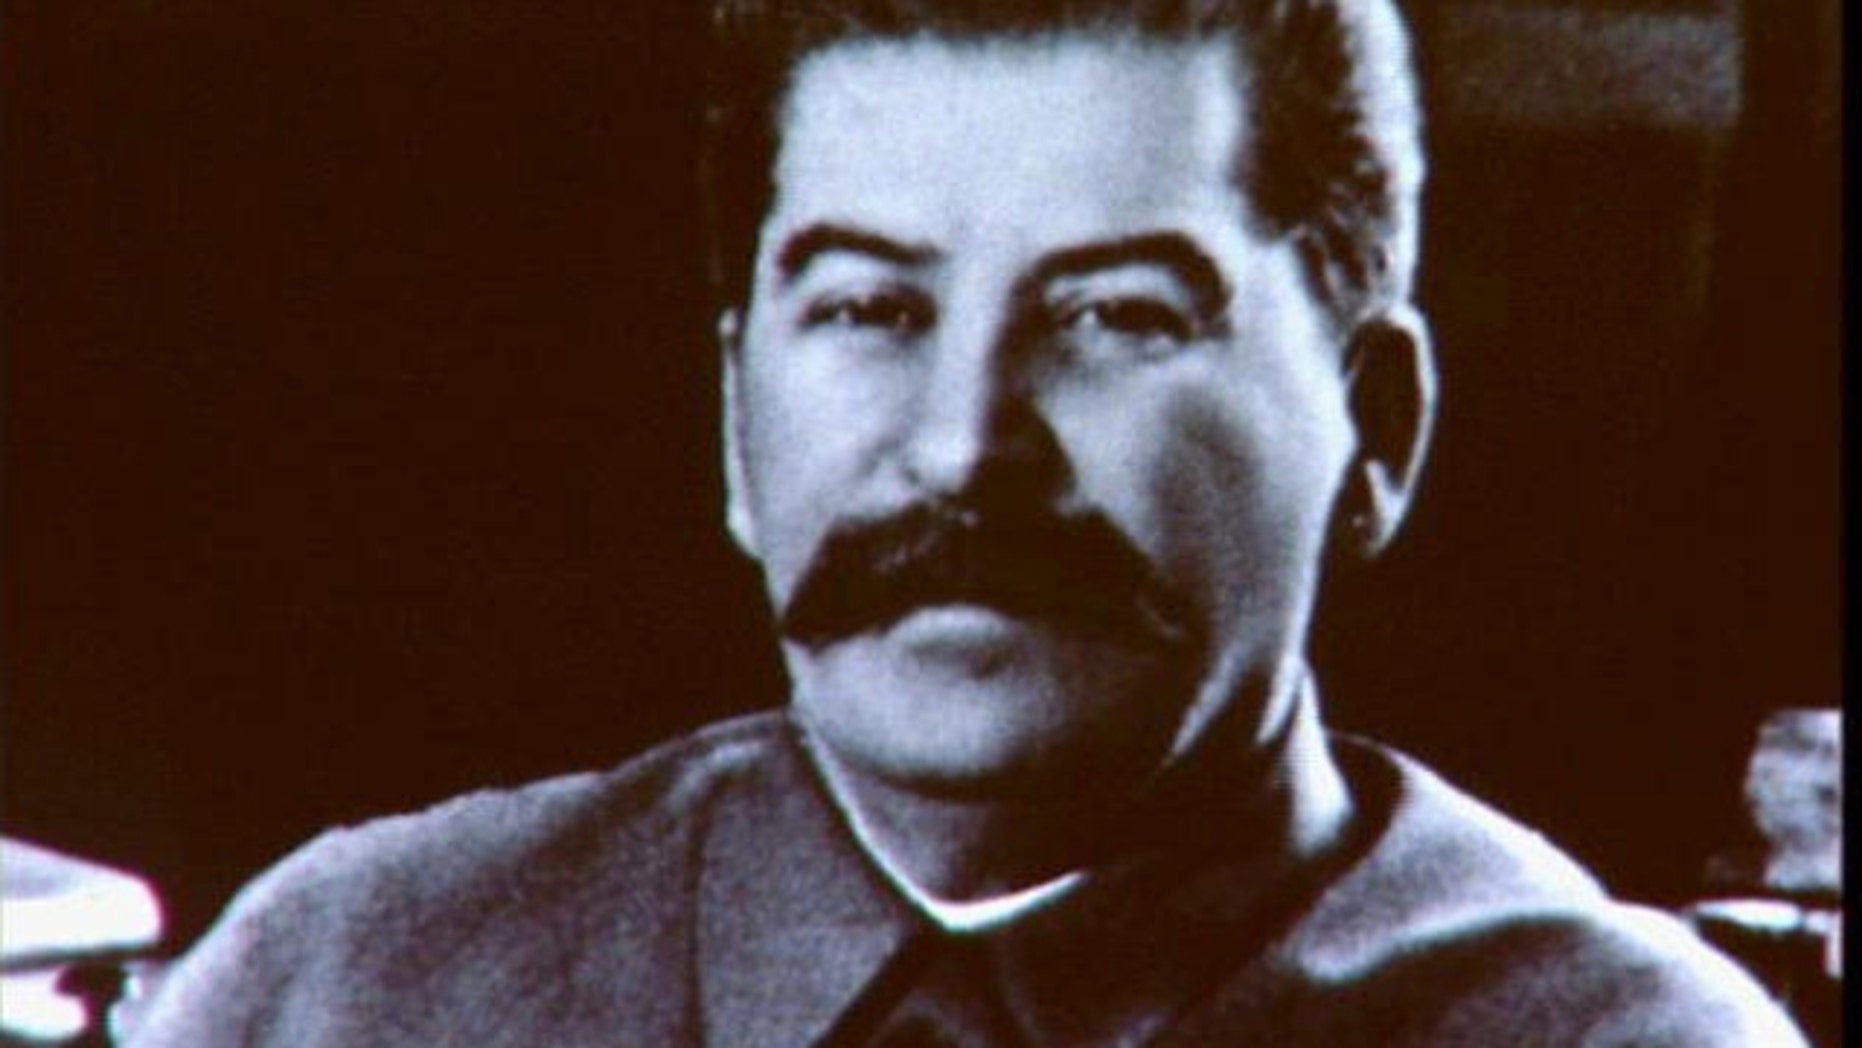 Russia's parliament admits that the WWII massacre of 20,000 Poles was committed under the direct order of Soviet dictator Josef Stalin.